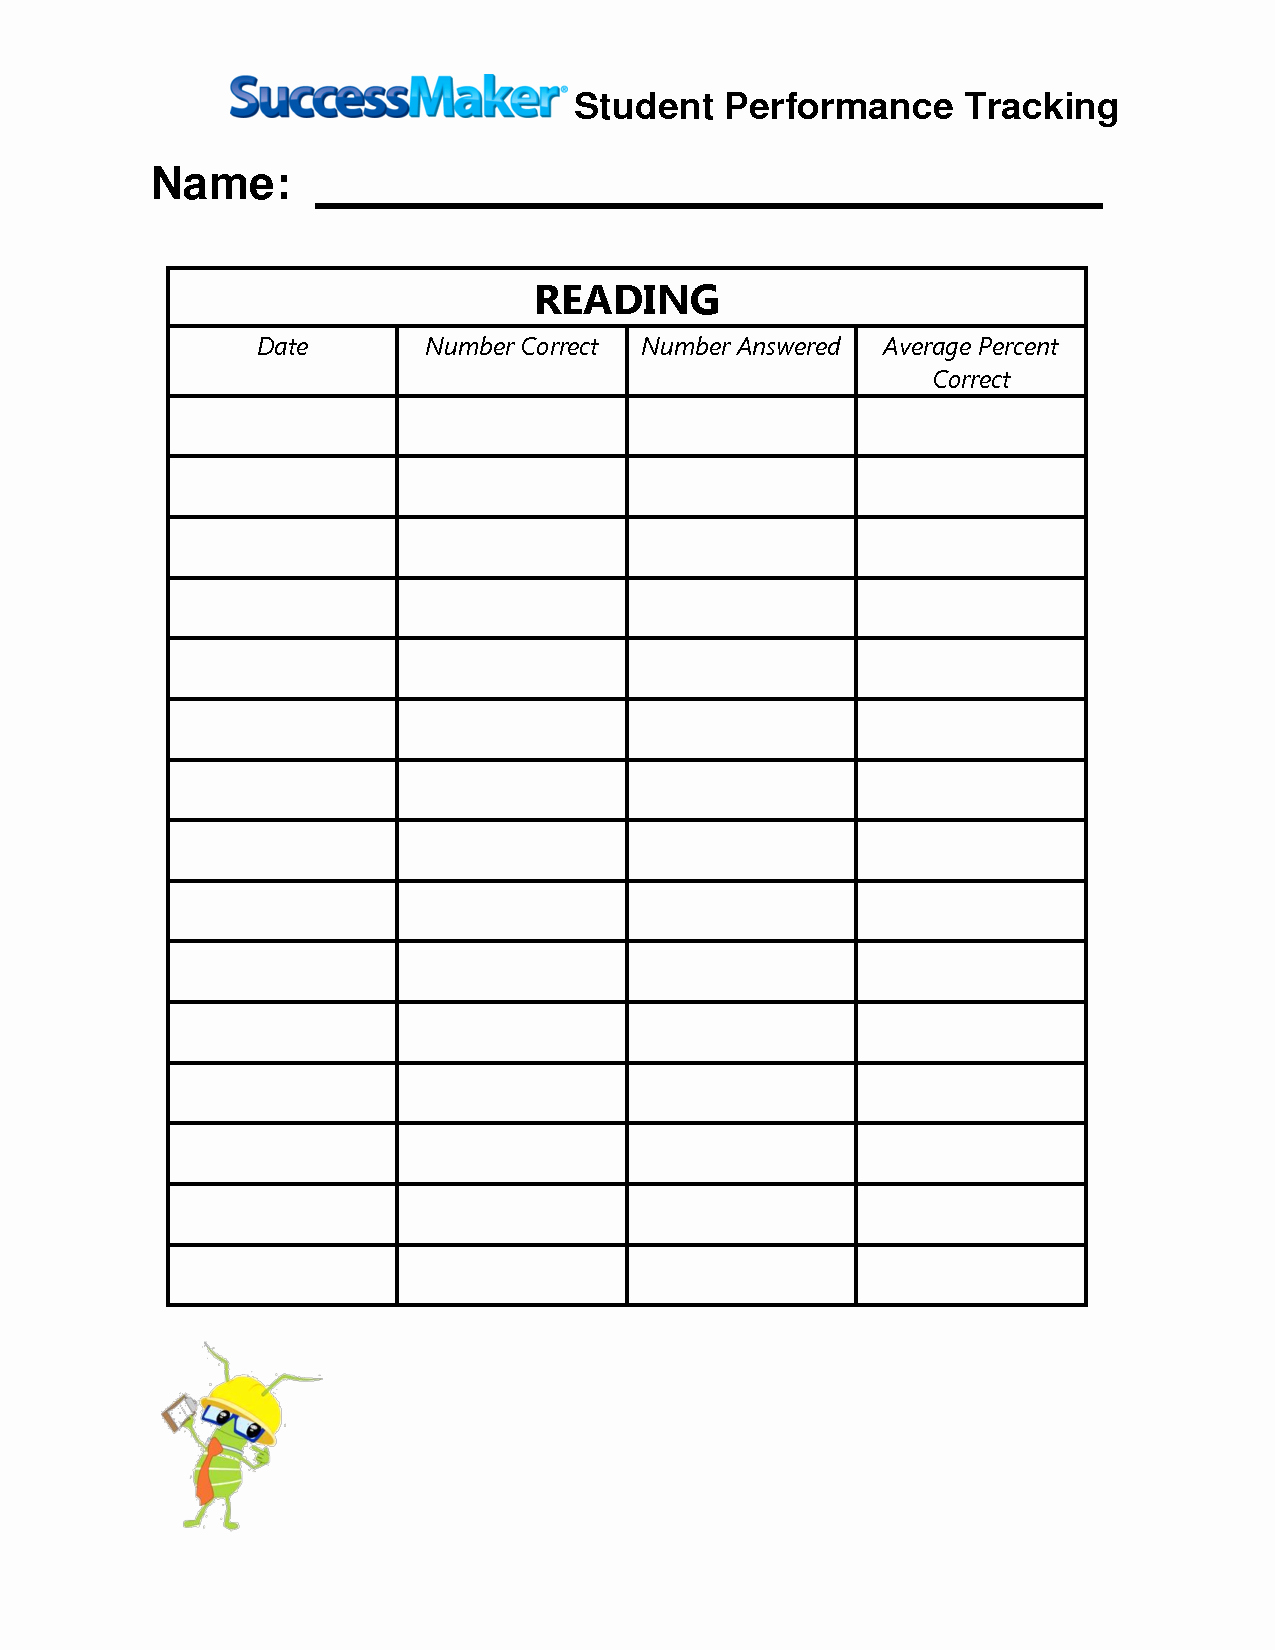 Tracking Student Progress Template Lovely Best S Of Tracking Student Progress Track Student Progress Student Reading Progress